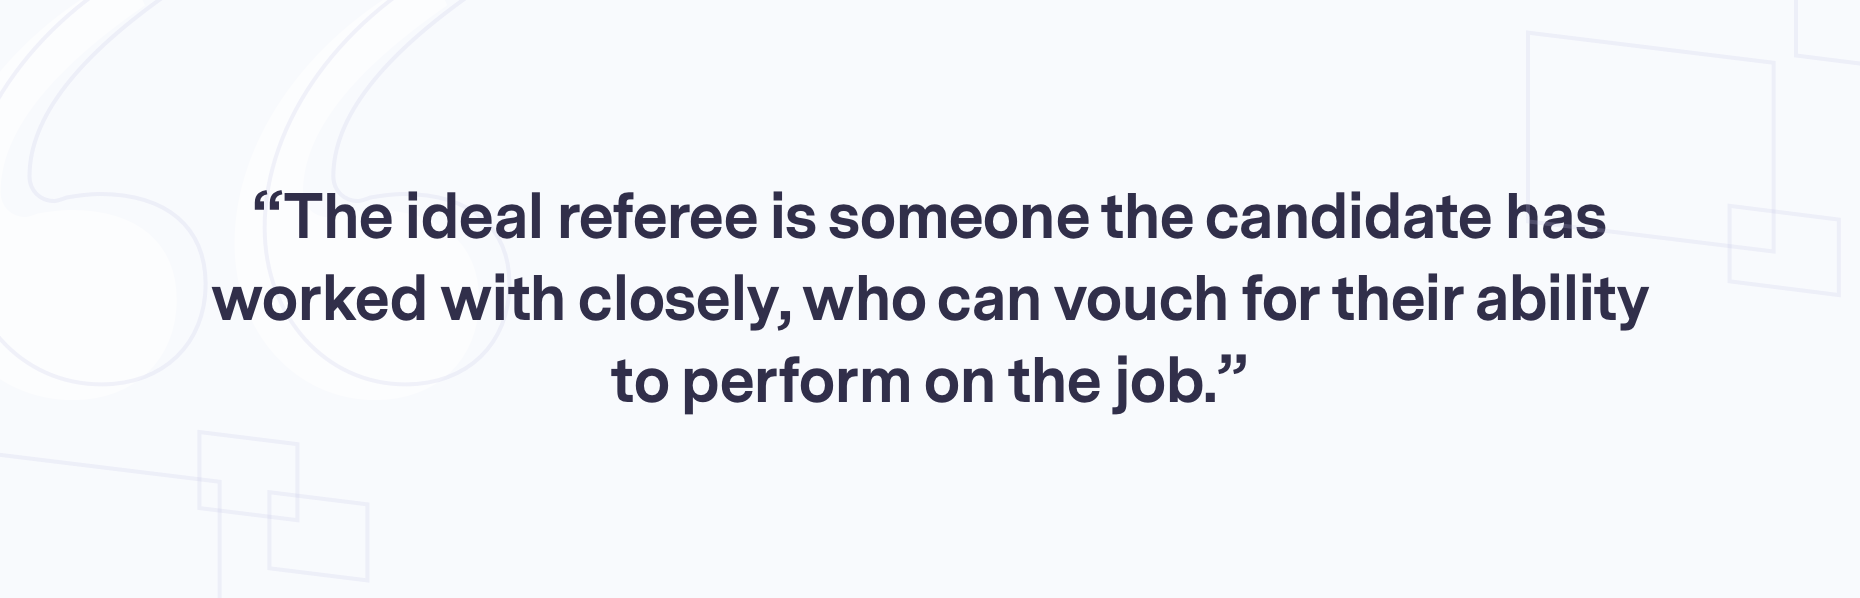 A referee can vouch for a candidate